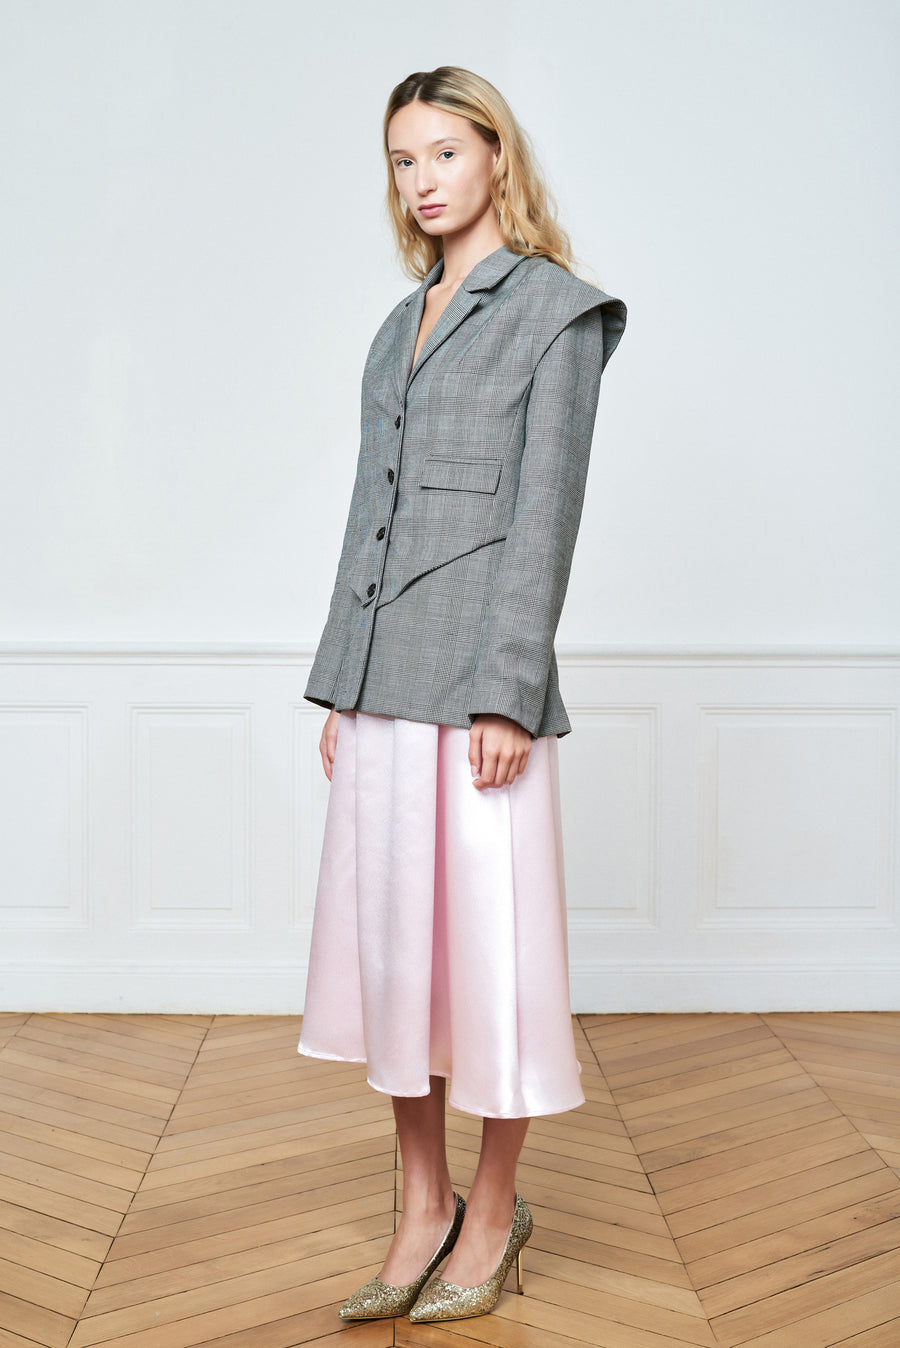 Double Layered Tailored Blazer and Over Knee Skirt